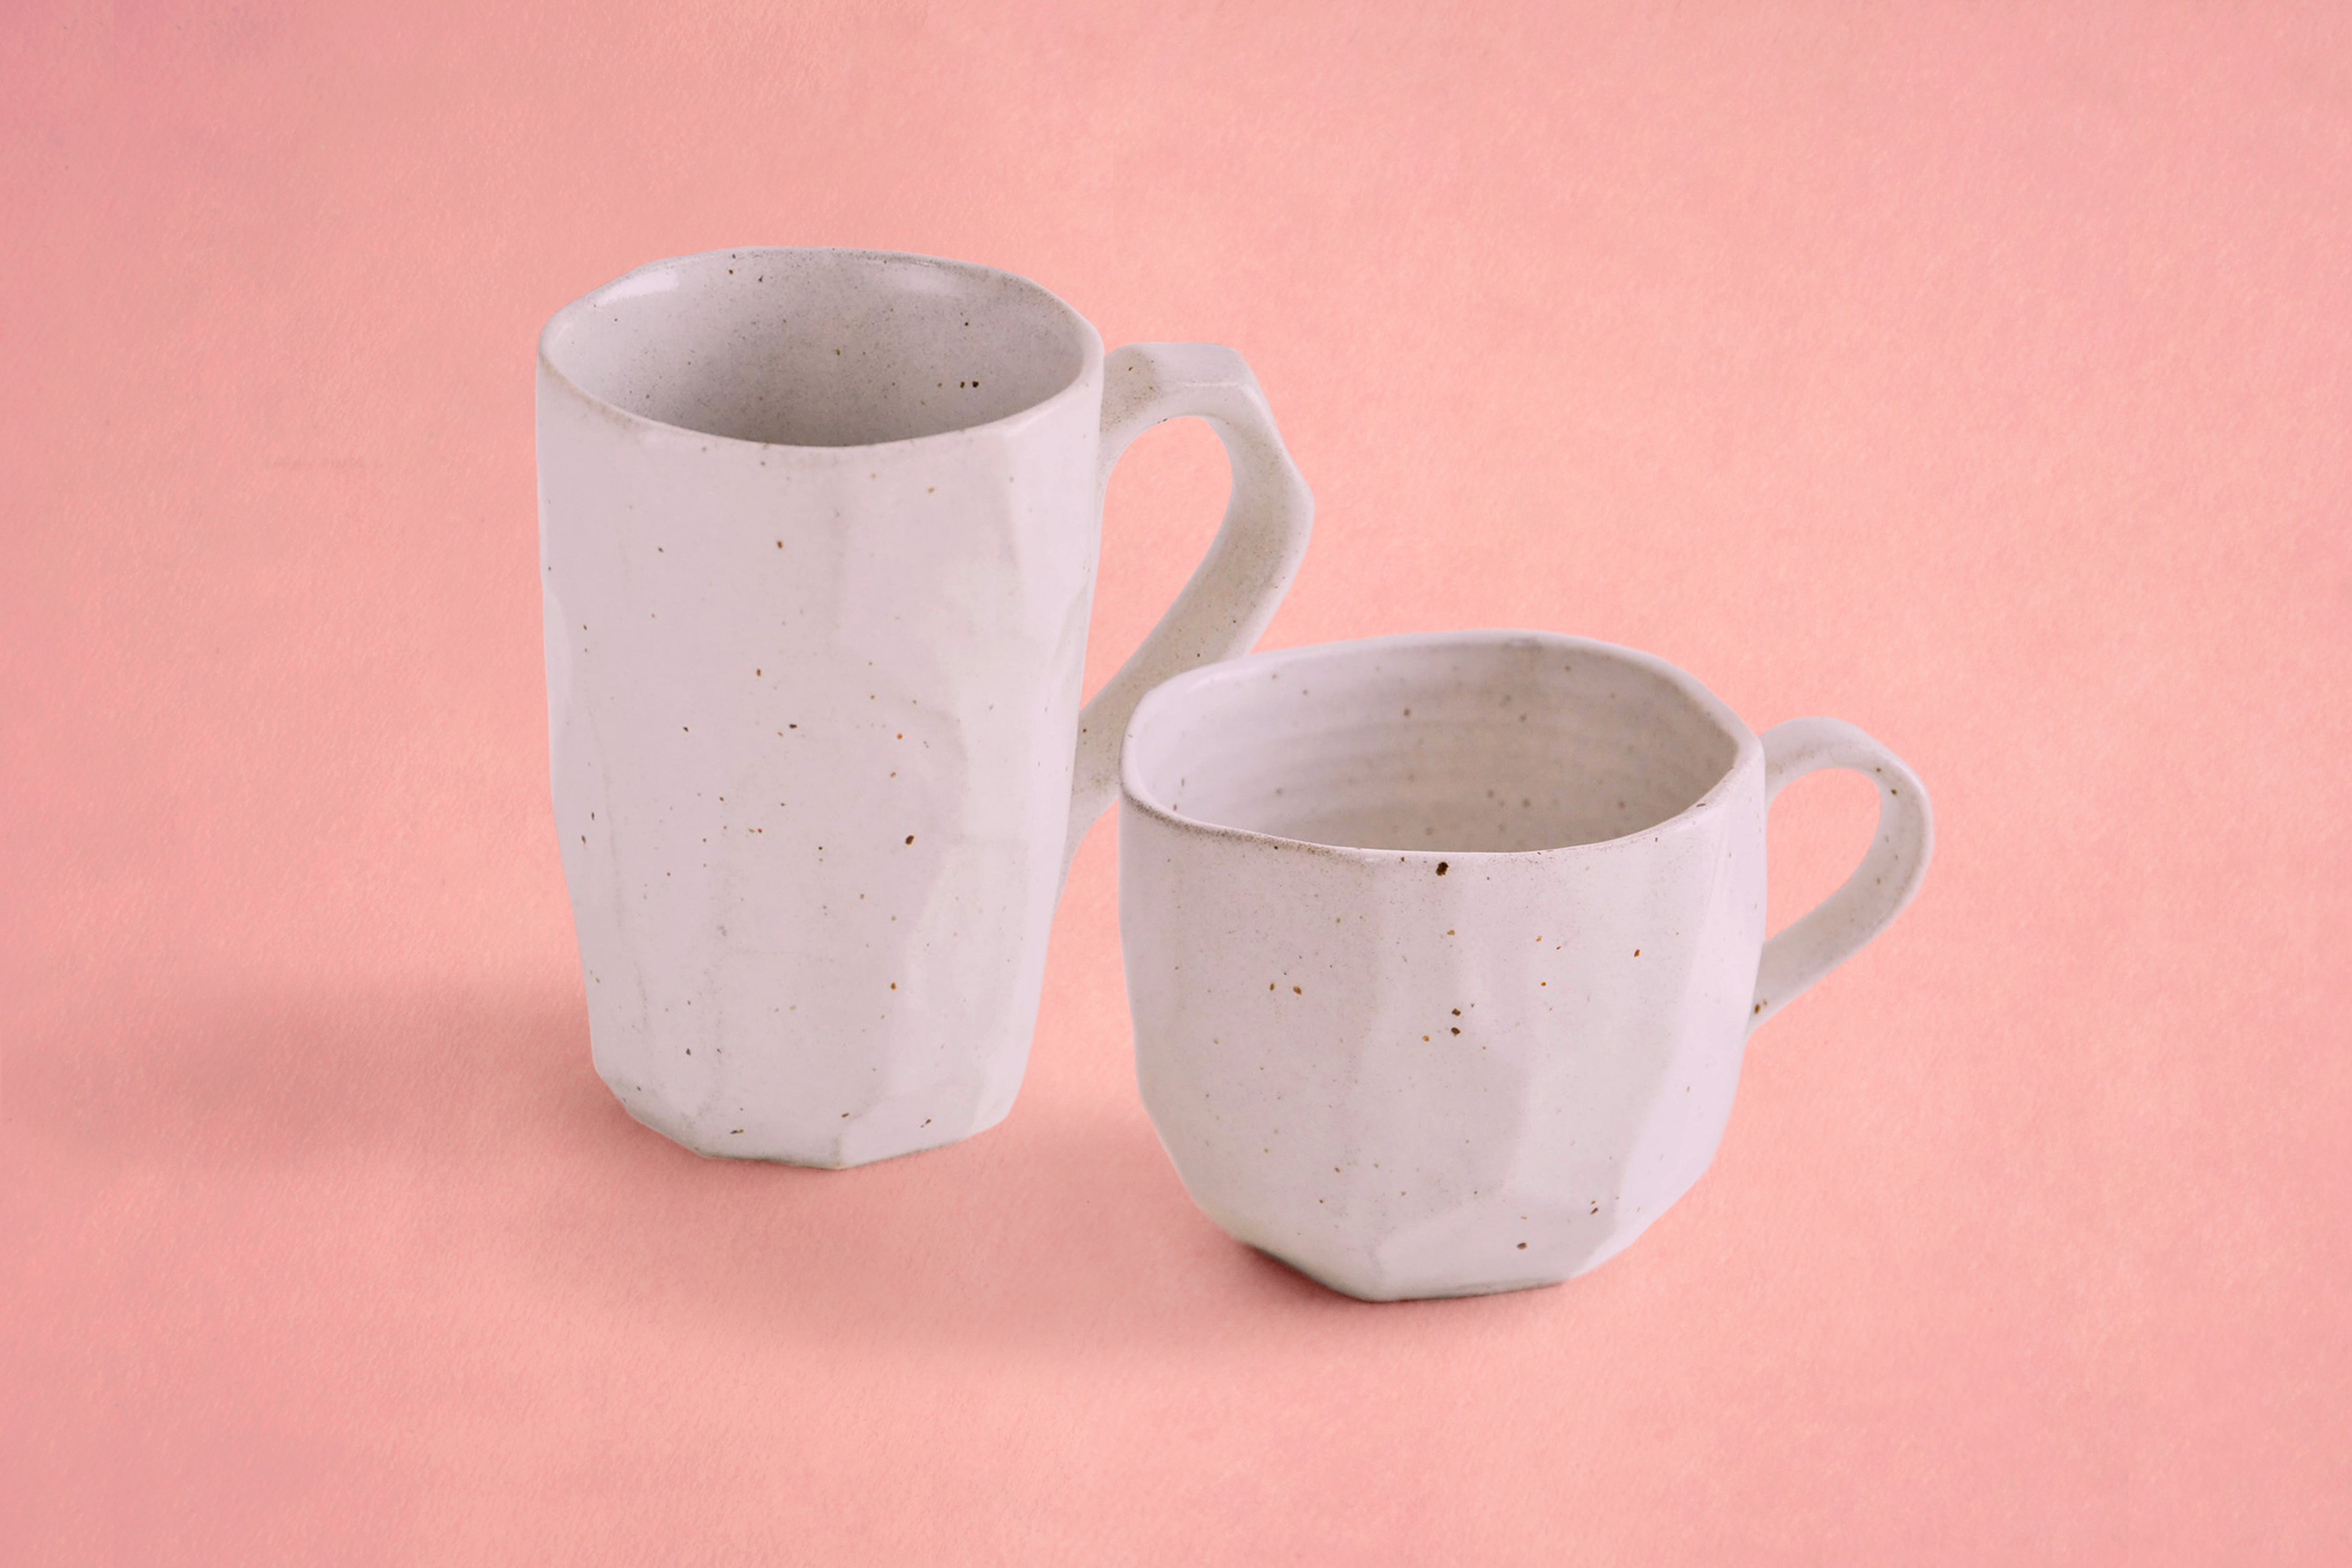 Moonrock is another artful mug